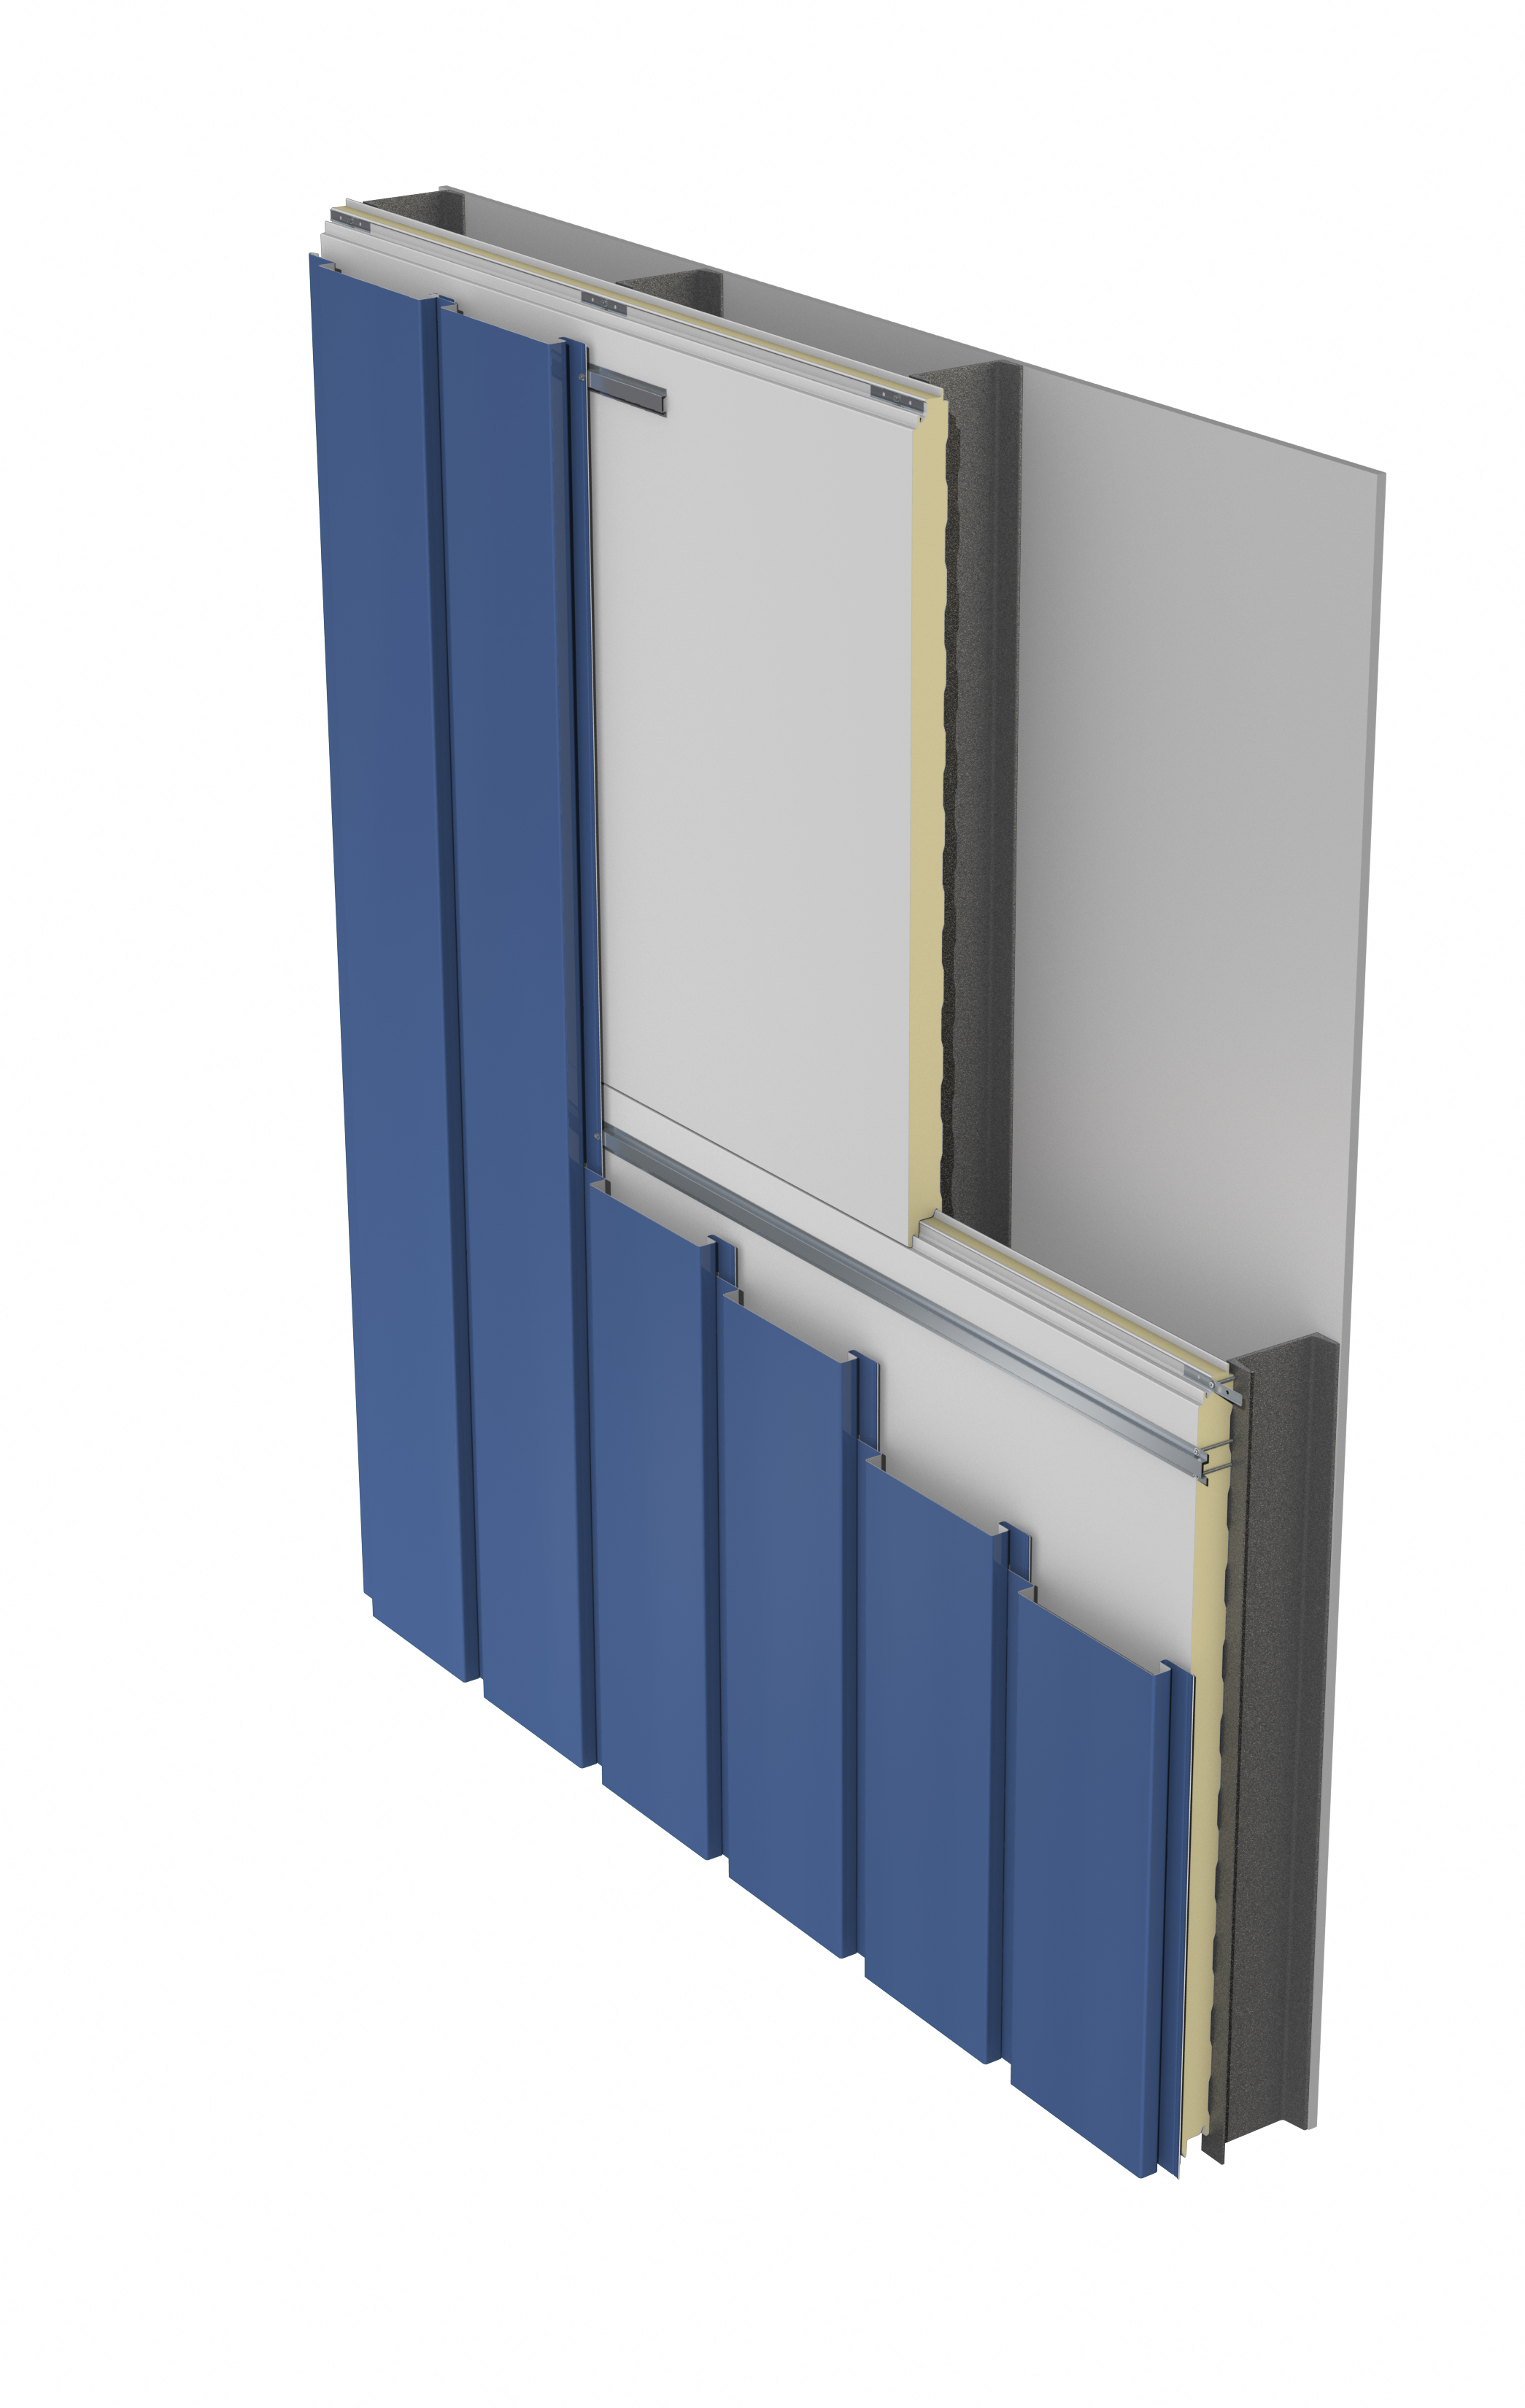 Metal Panels For Walls hpci insulated metal panel for construction from metl-span